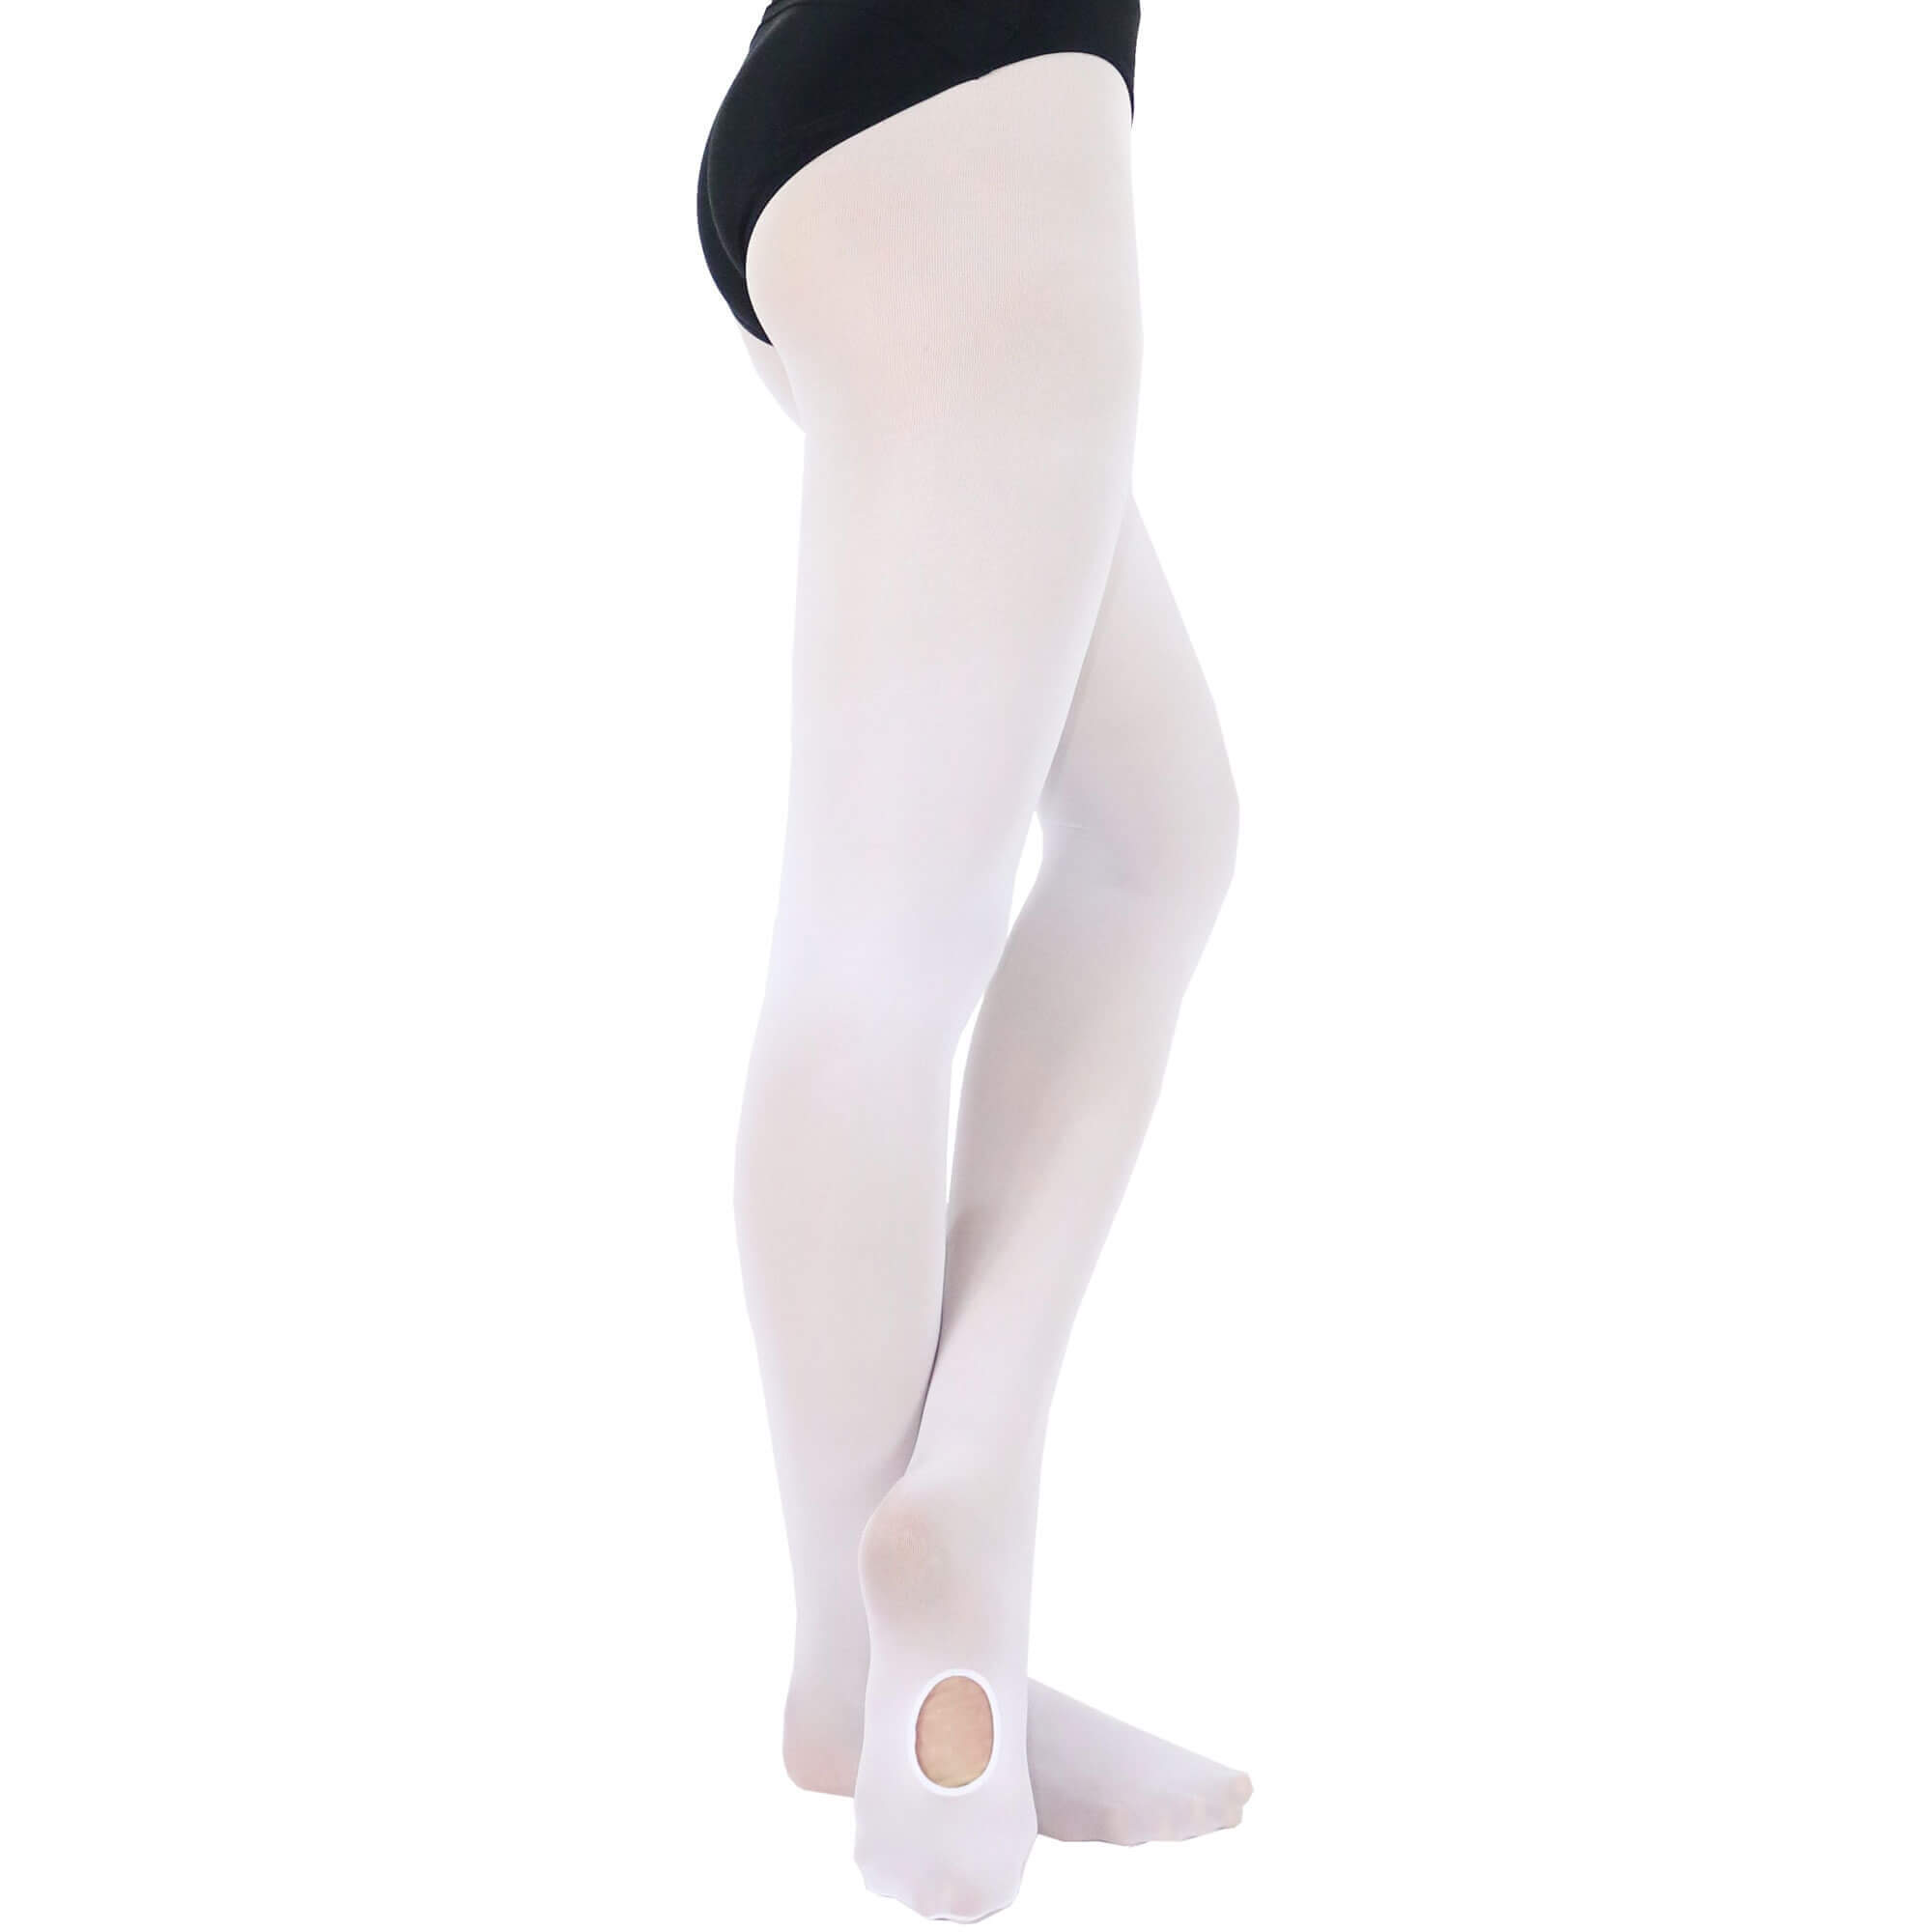 Danzcue Adult Ultra-Stretch Convertible Tights